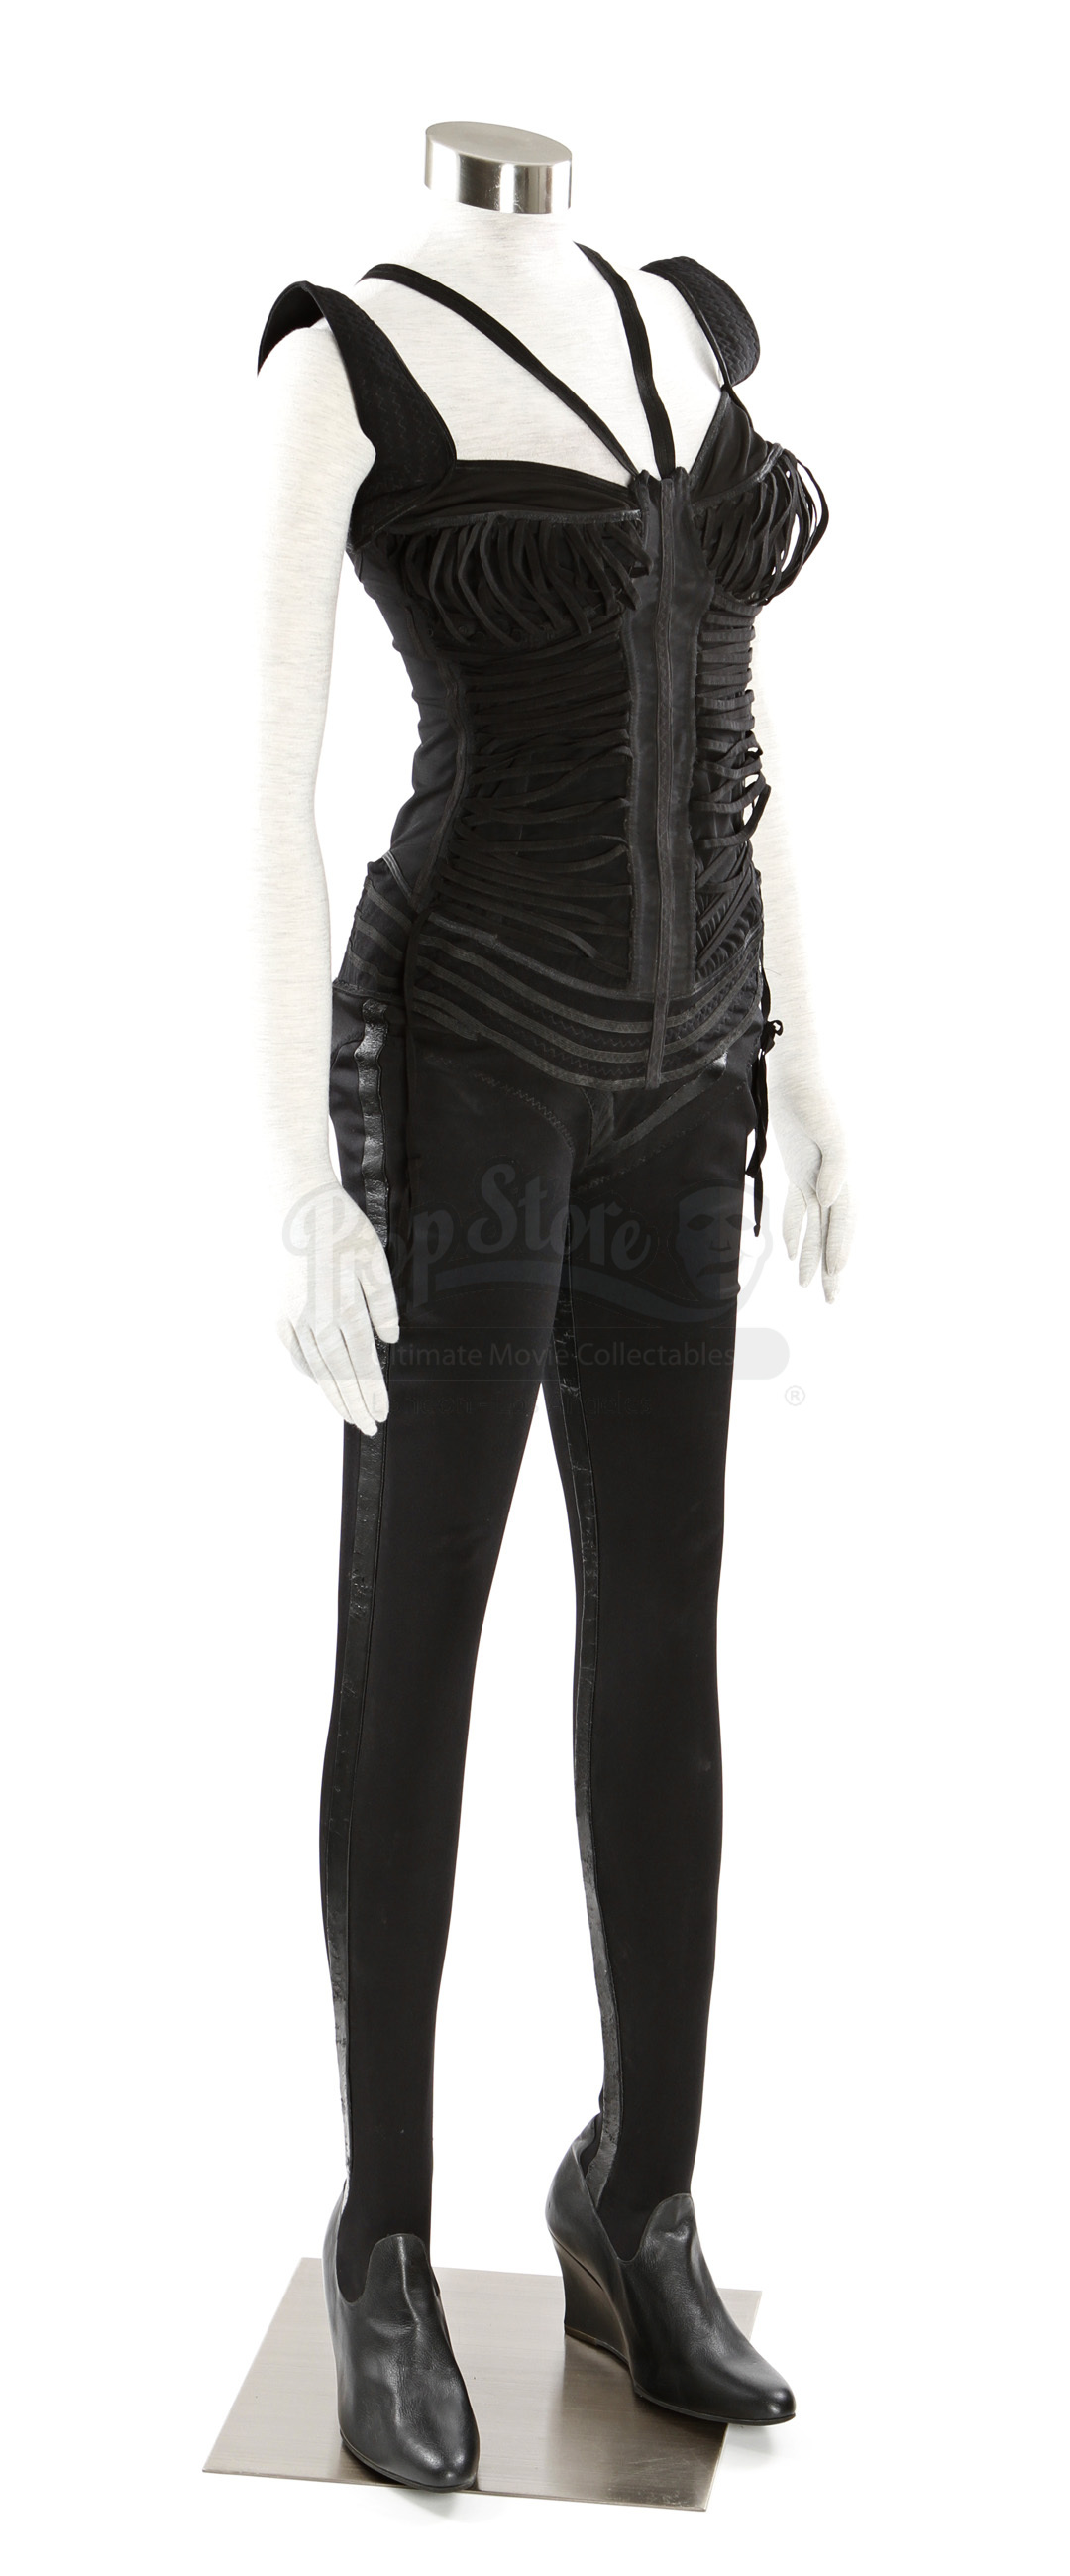 Aeon Flux Costume Prop Store Ultimate Movie Collectables